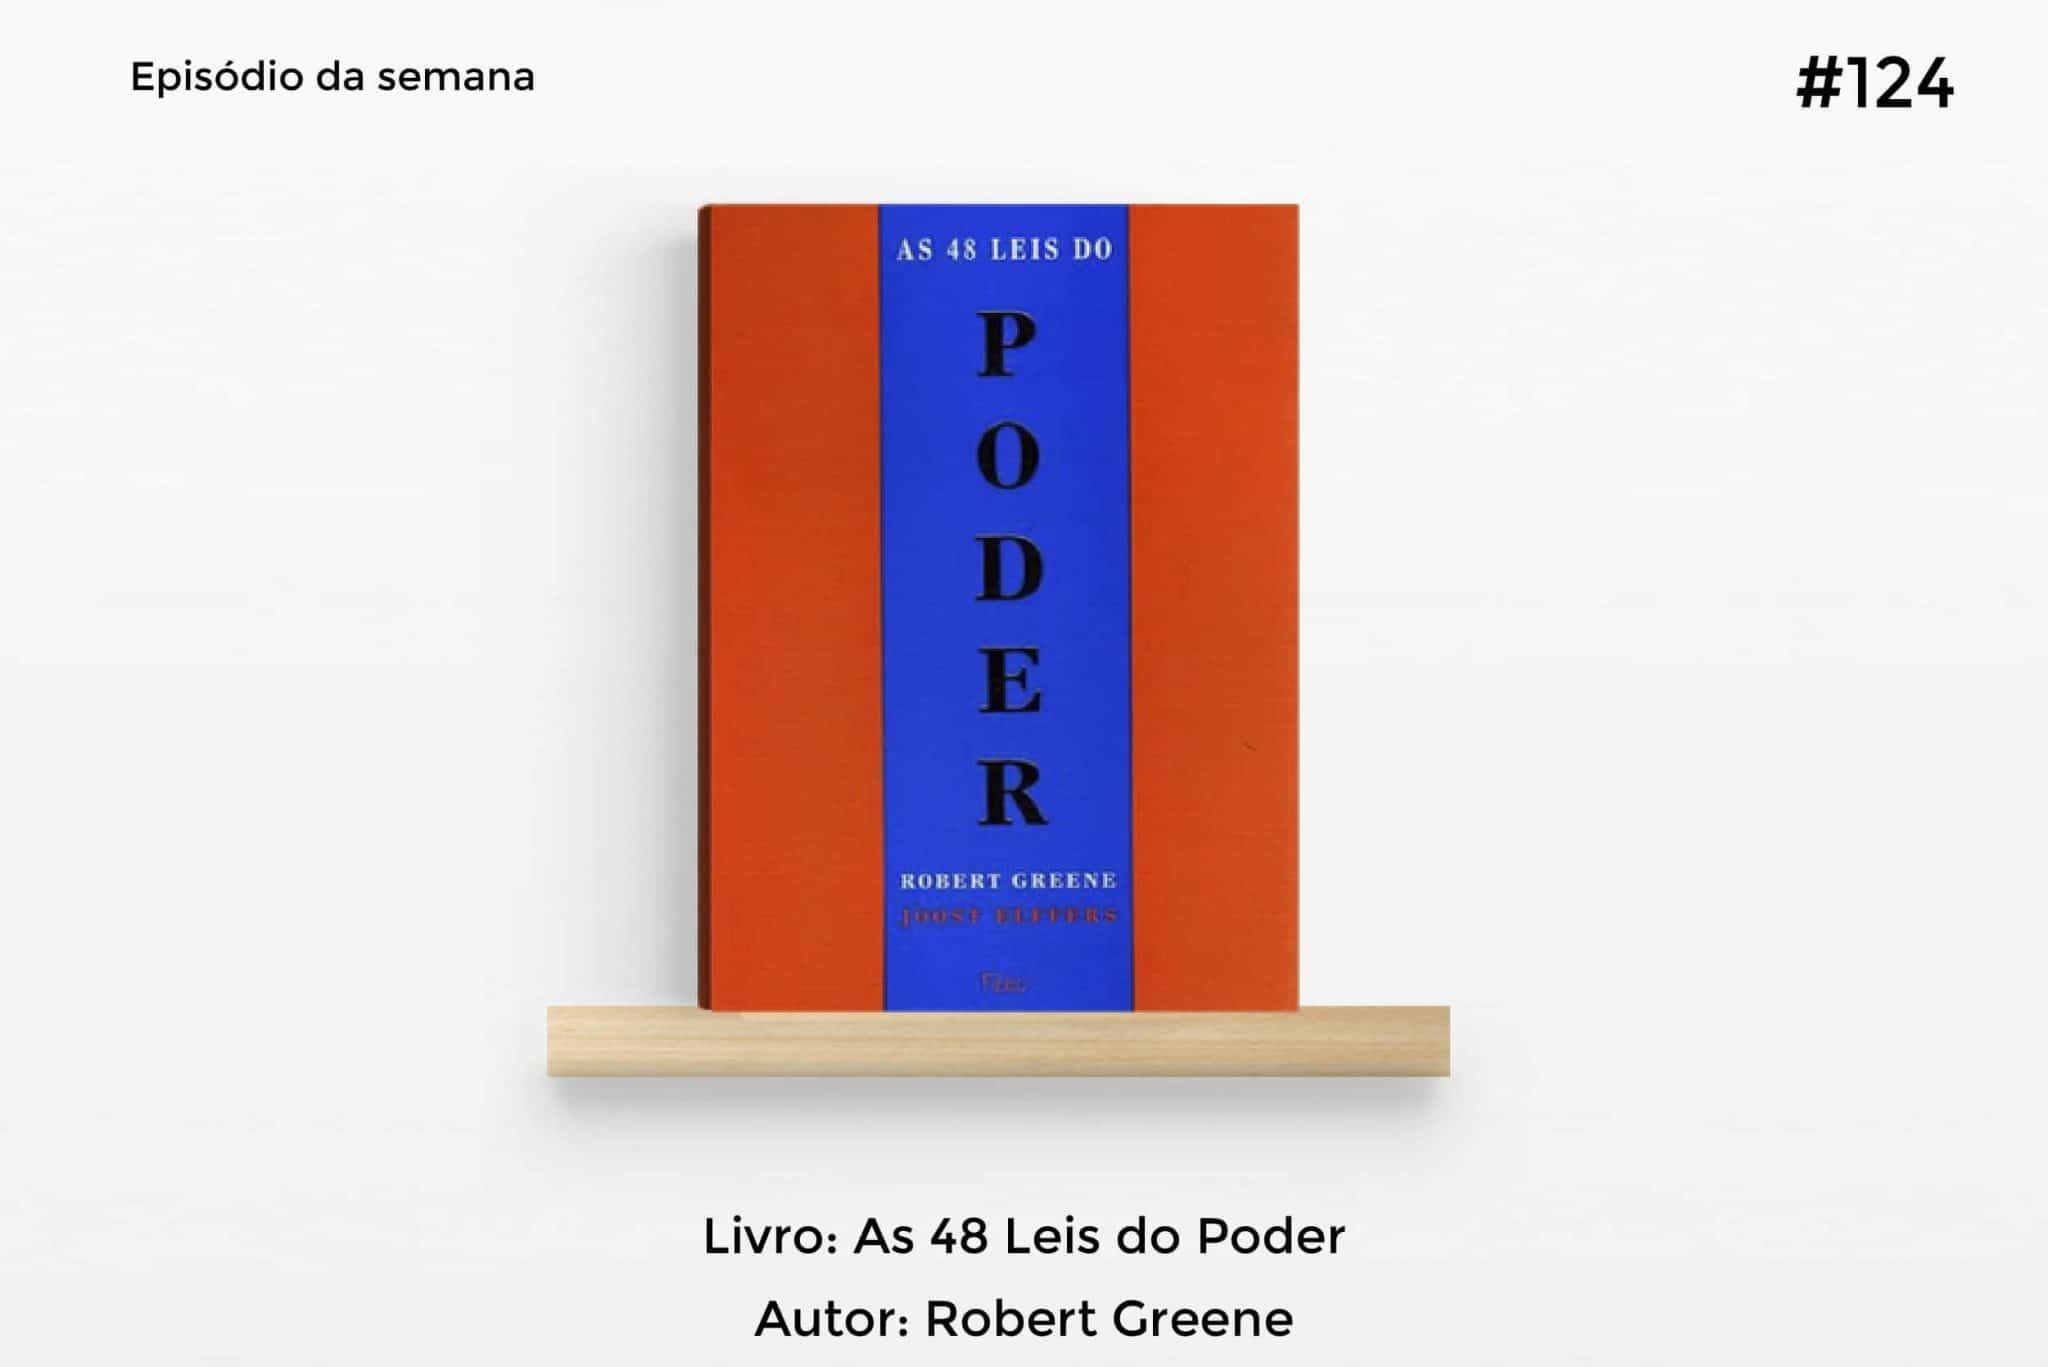 As 48 Leis do Poder – Robert Greene | T1#124